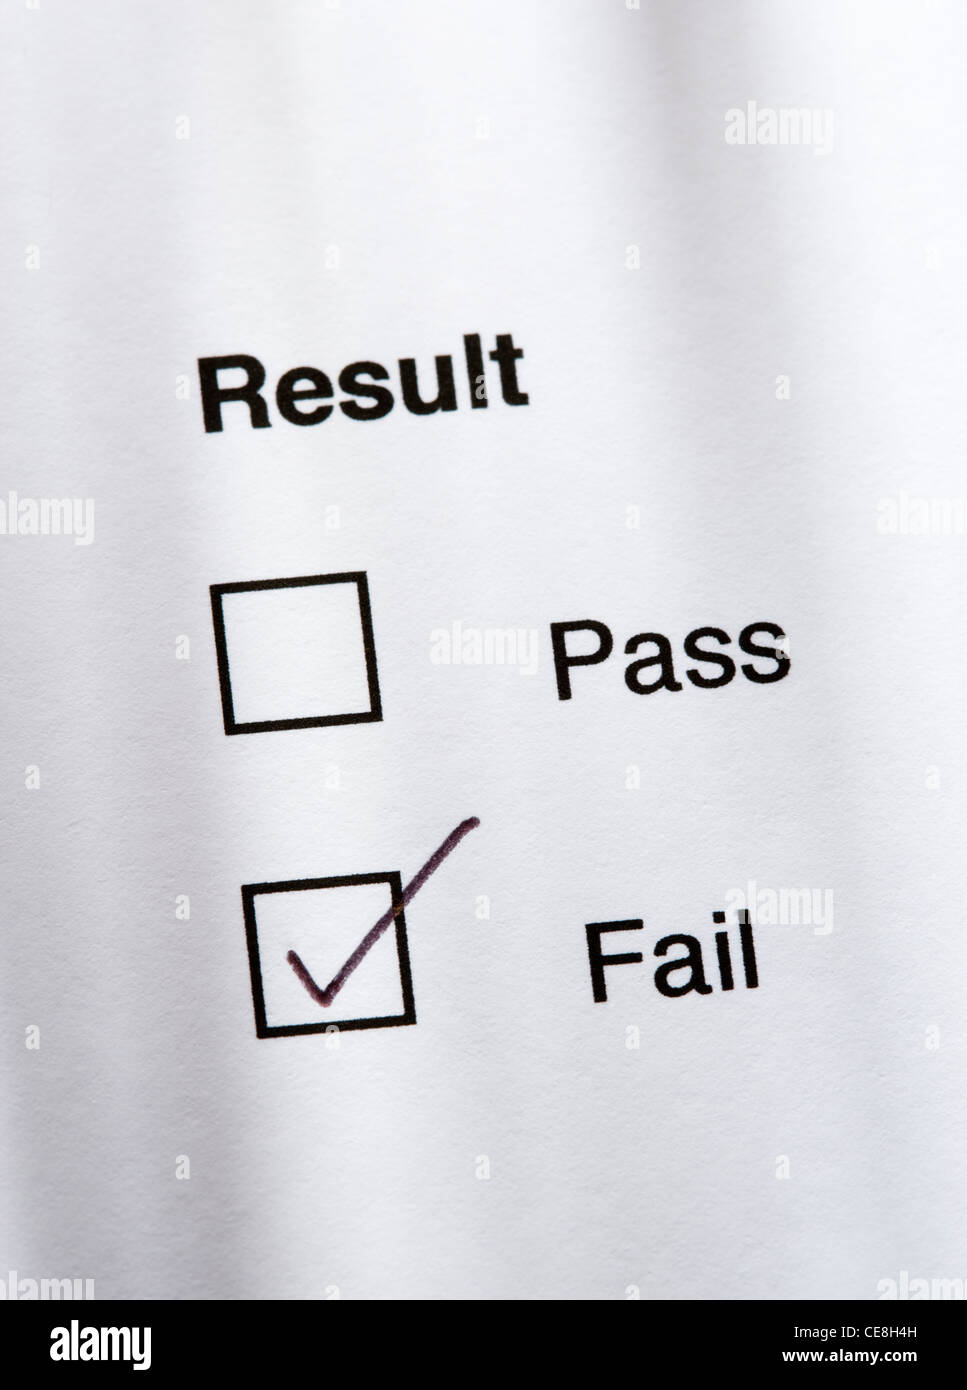 Result - fail - Stock Image